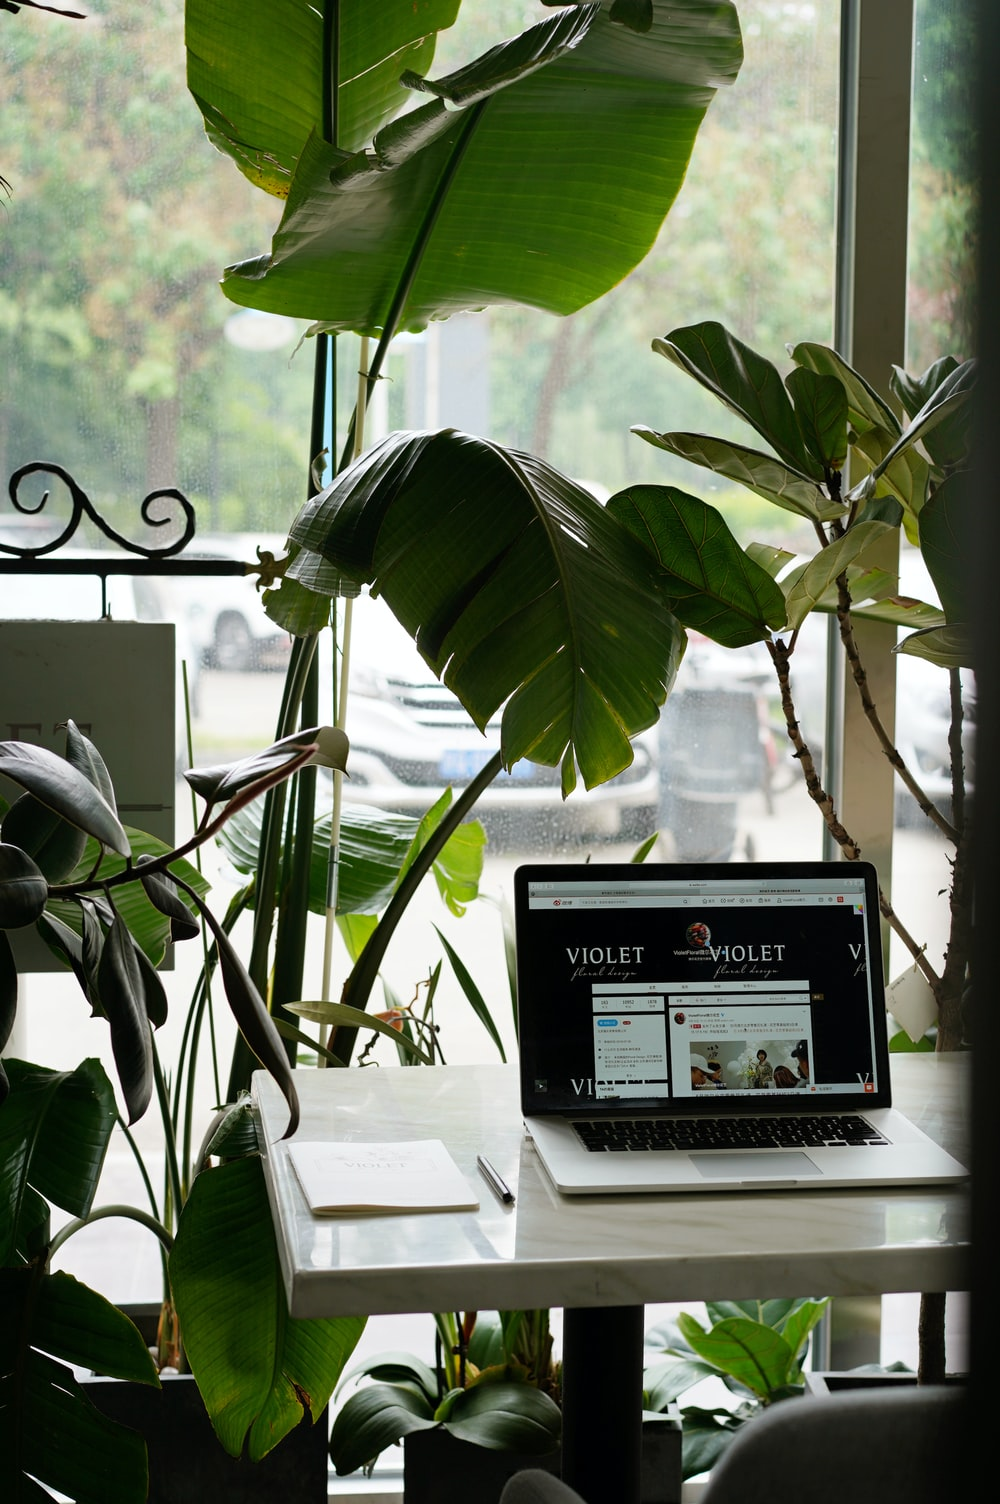 green-leafed plant near laptop and desk